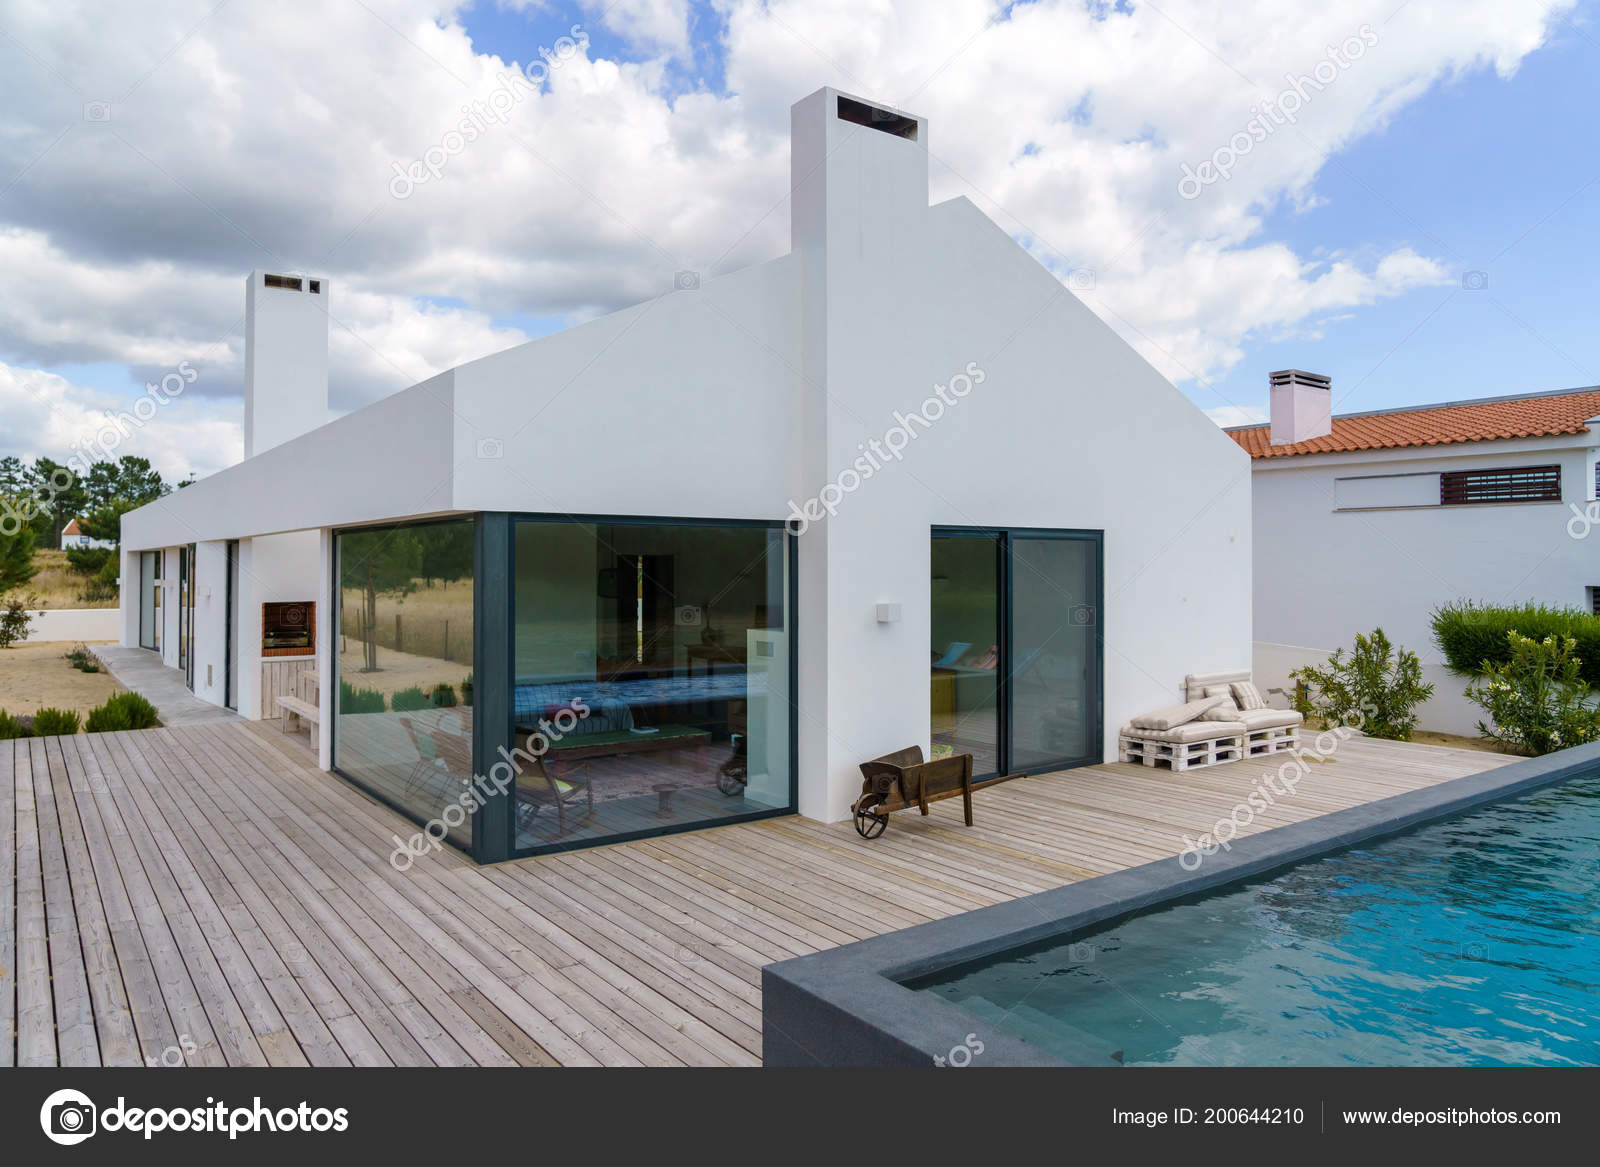 Piscine Avec Terrasse Bois modern house garden swimming pool wooden deck — stock photo